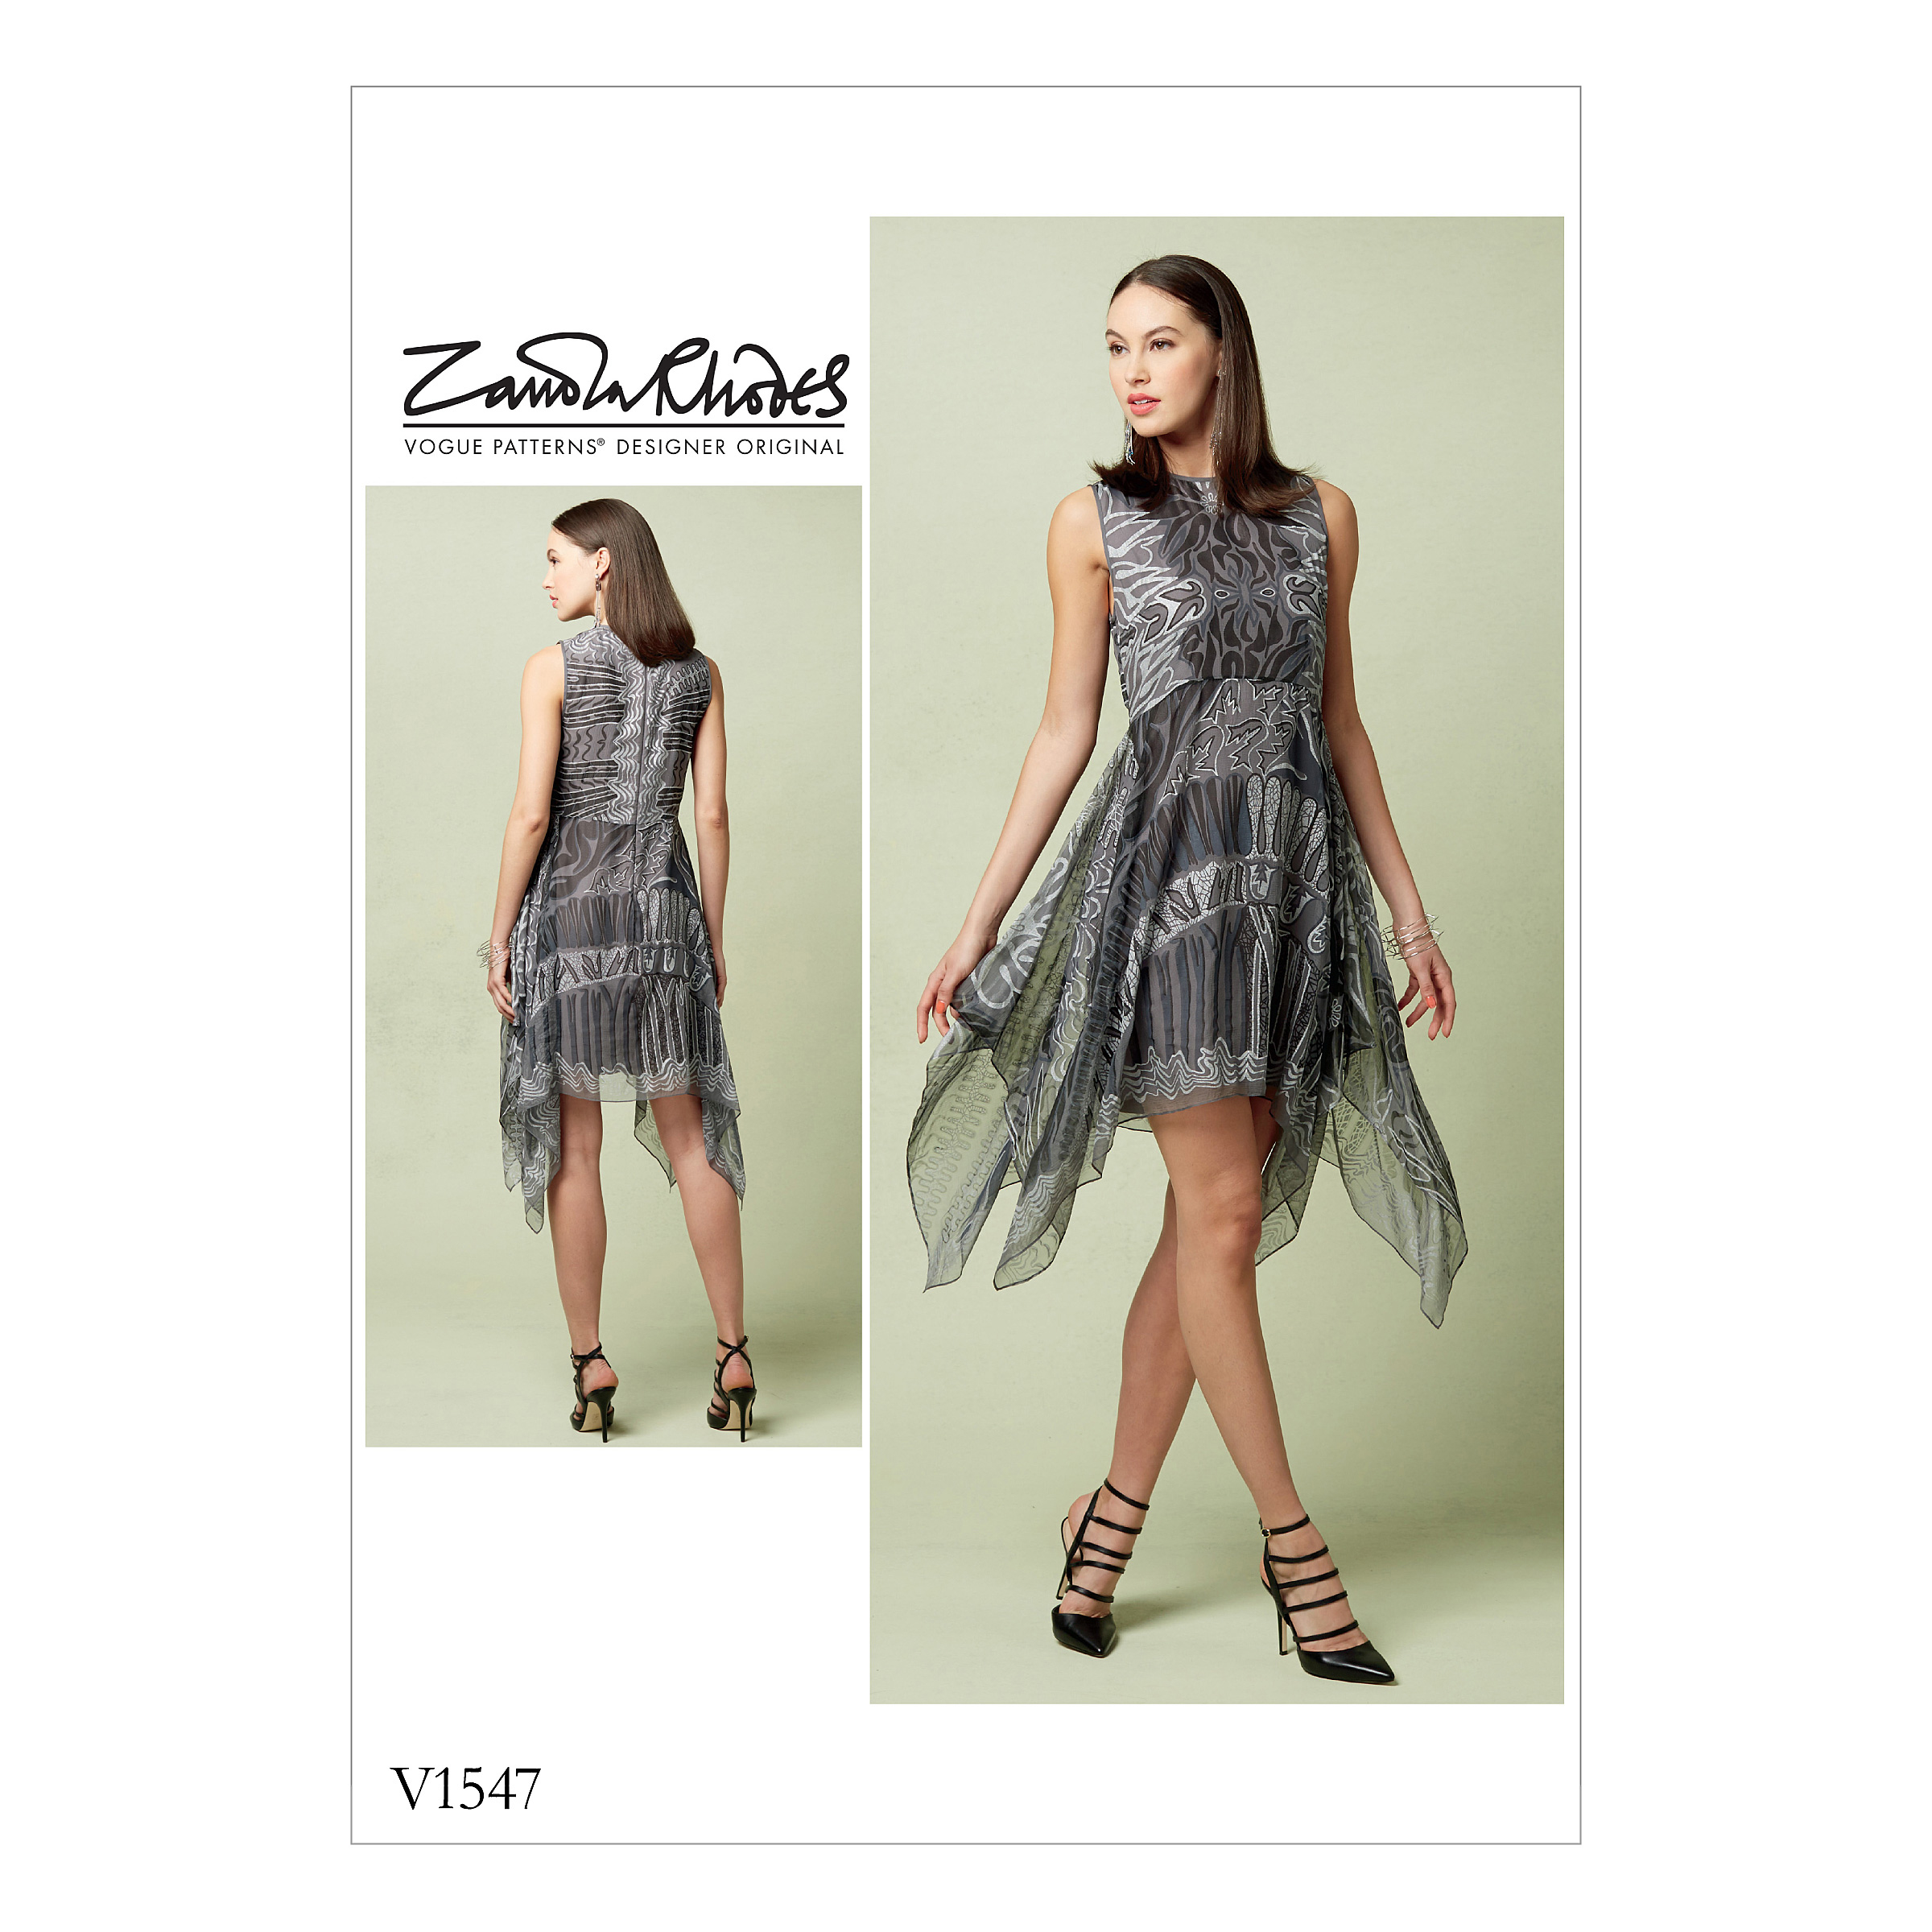 Vogue Patterns Sewing Pattern Misses' Lined Dress with Handkerchief-Style Overlay-6-8-10-12-14